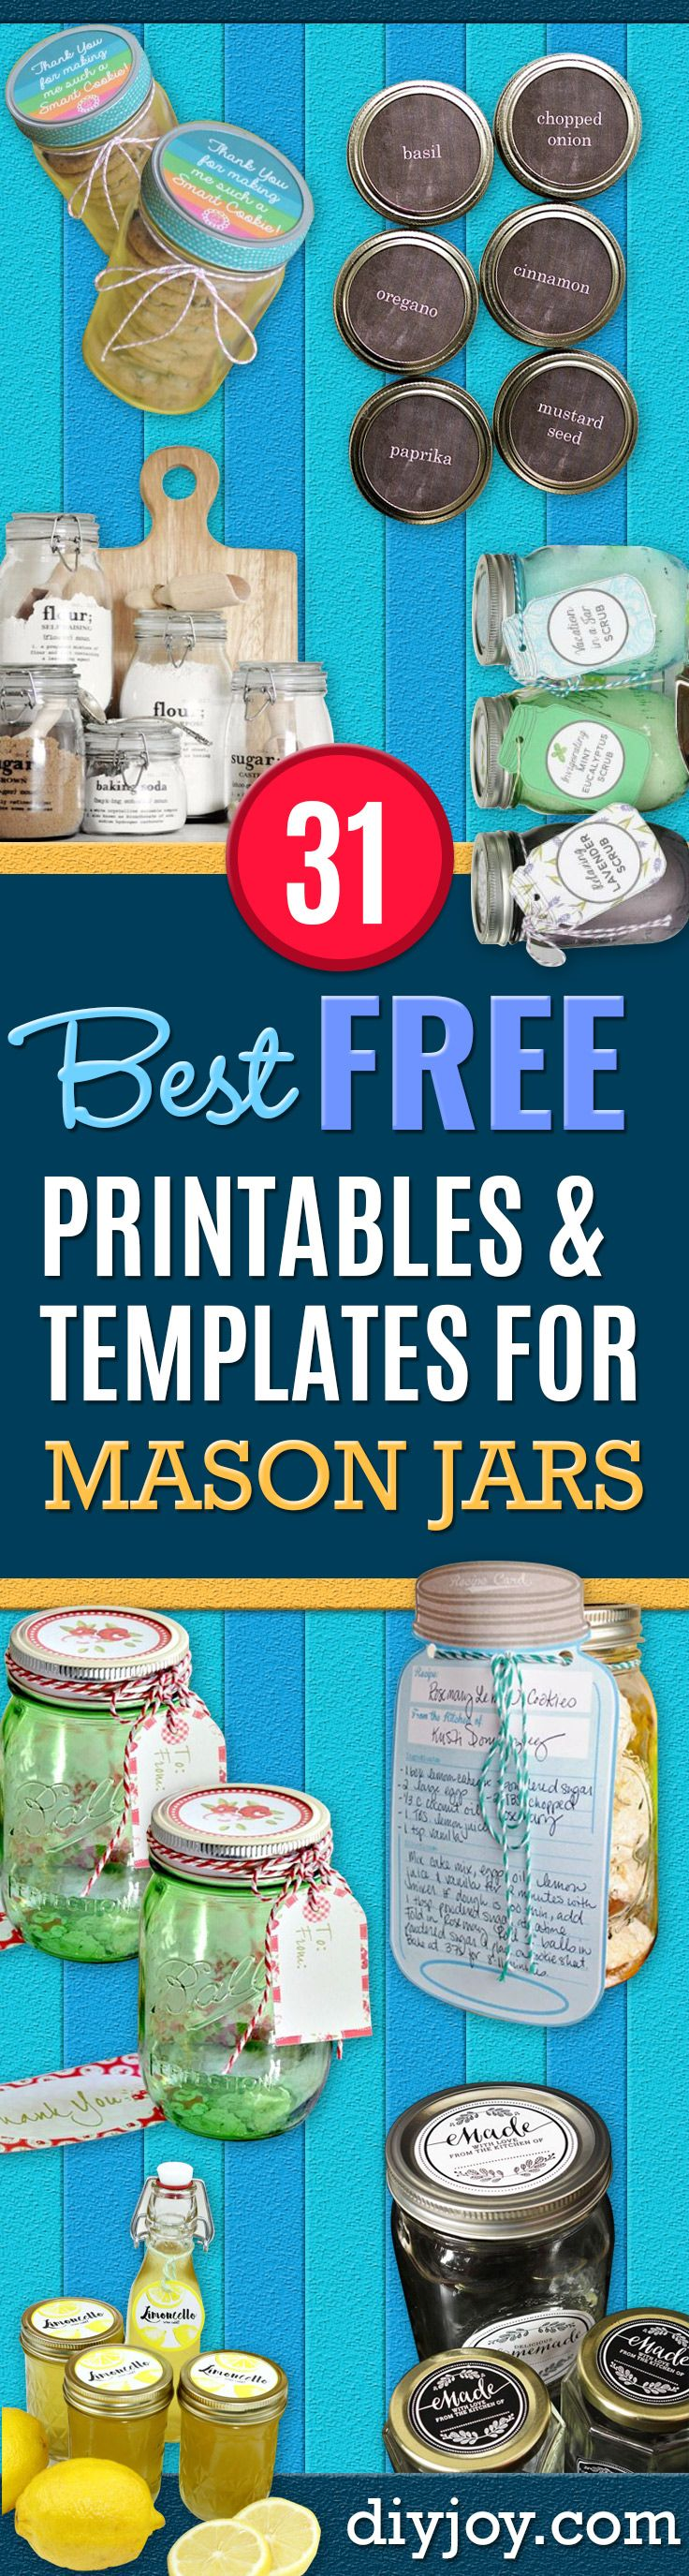 Free Printables for Mason Jars - Best Ideas for Tags and Printable Clip Art for Fun Mason Jar Gifts and Organization - Sugar scrub, Teacher Gifts, Valentines, Cookie Mixes, Party Favors, Wedding Holidays and Fun Recipes - DIY Mason Jar Gifts and Home Decor Crafts by DIY JOY http://diyjoy.com/free-printables-mason-jars